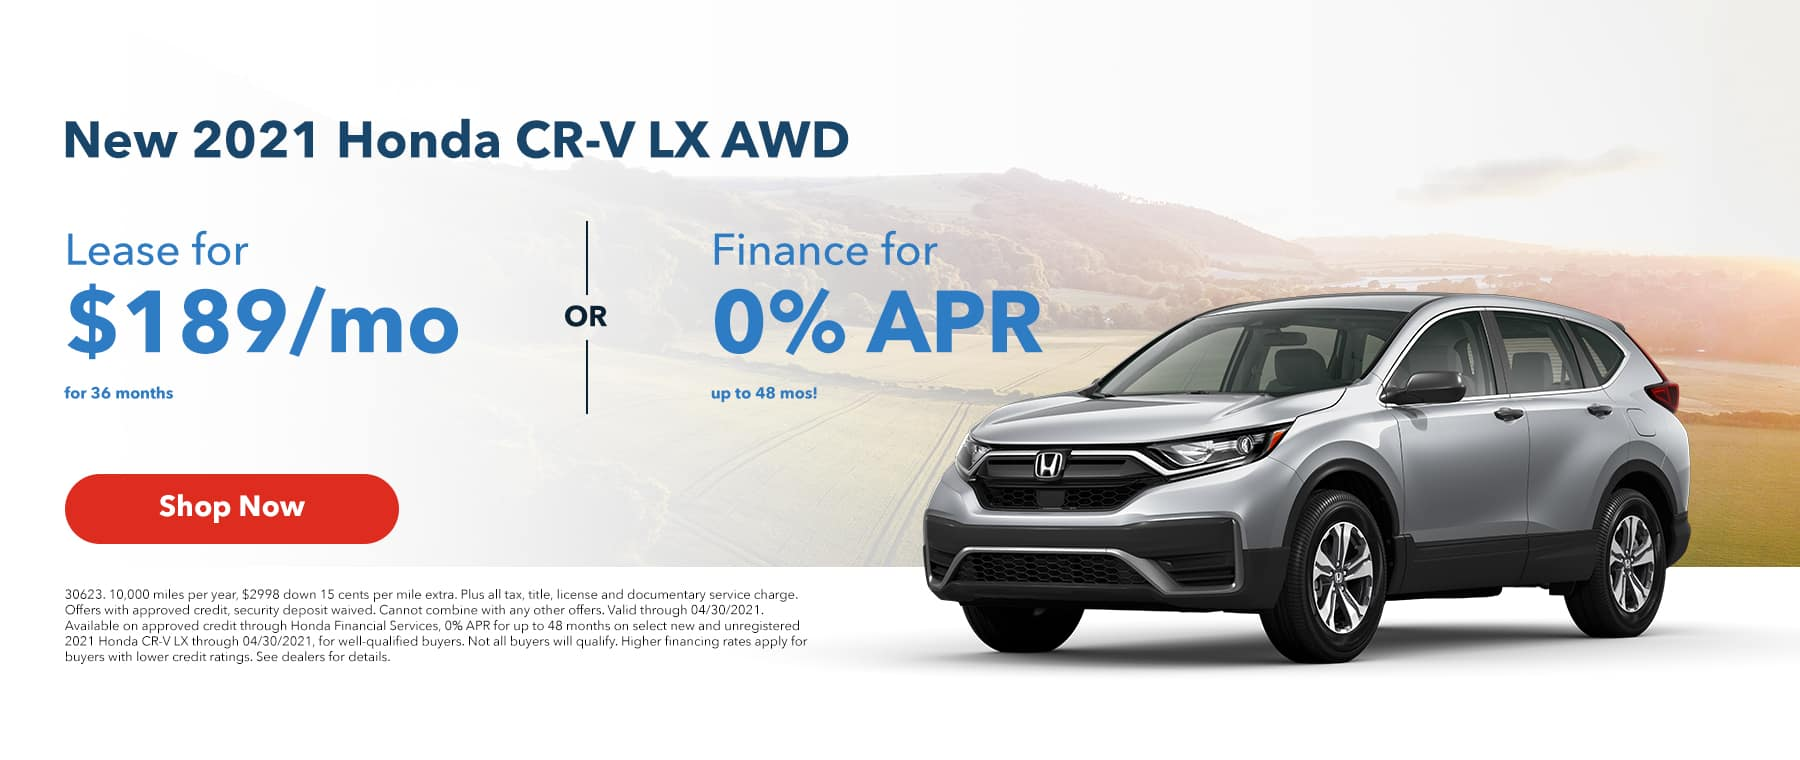 Lease a New 2021 Honda CR-V LX AWD for $189/mo for 36mos or Finance for 0% APR up to 48mos!